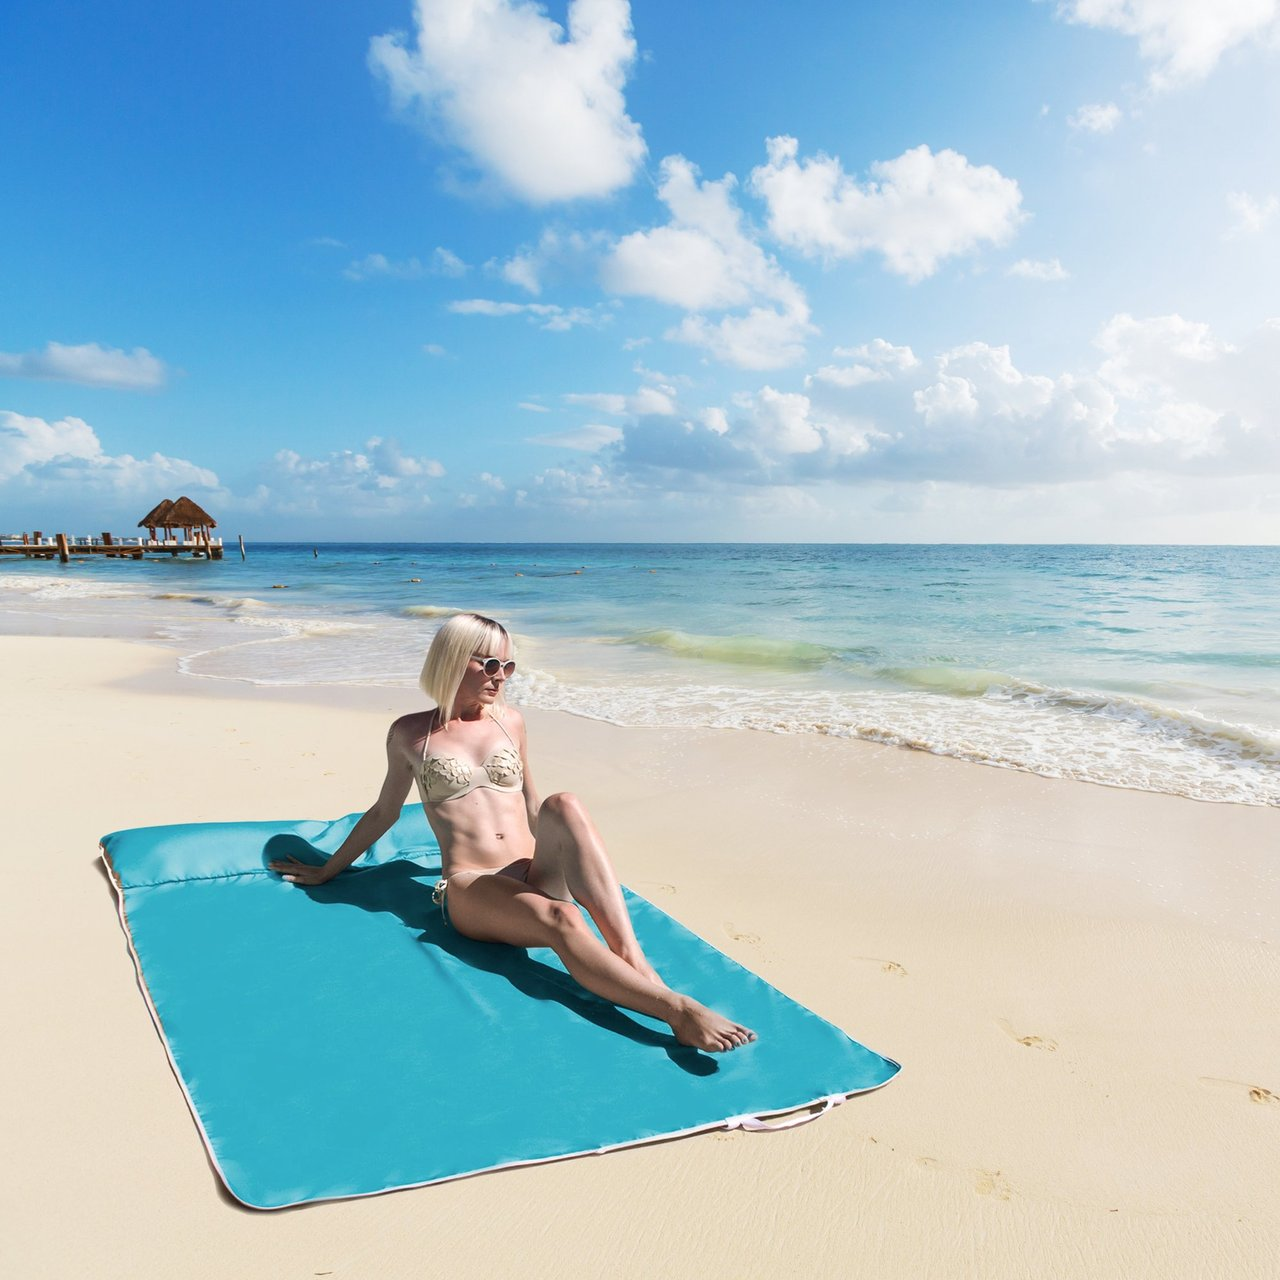 Beltline Outdoor Waterproof Beach Blanket for Two by Jaxx